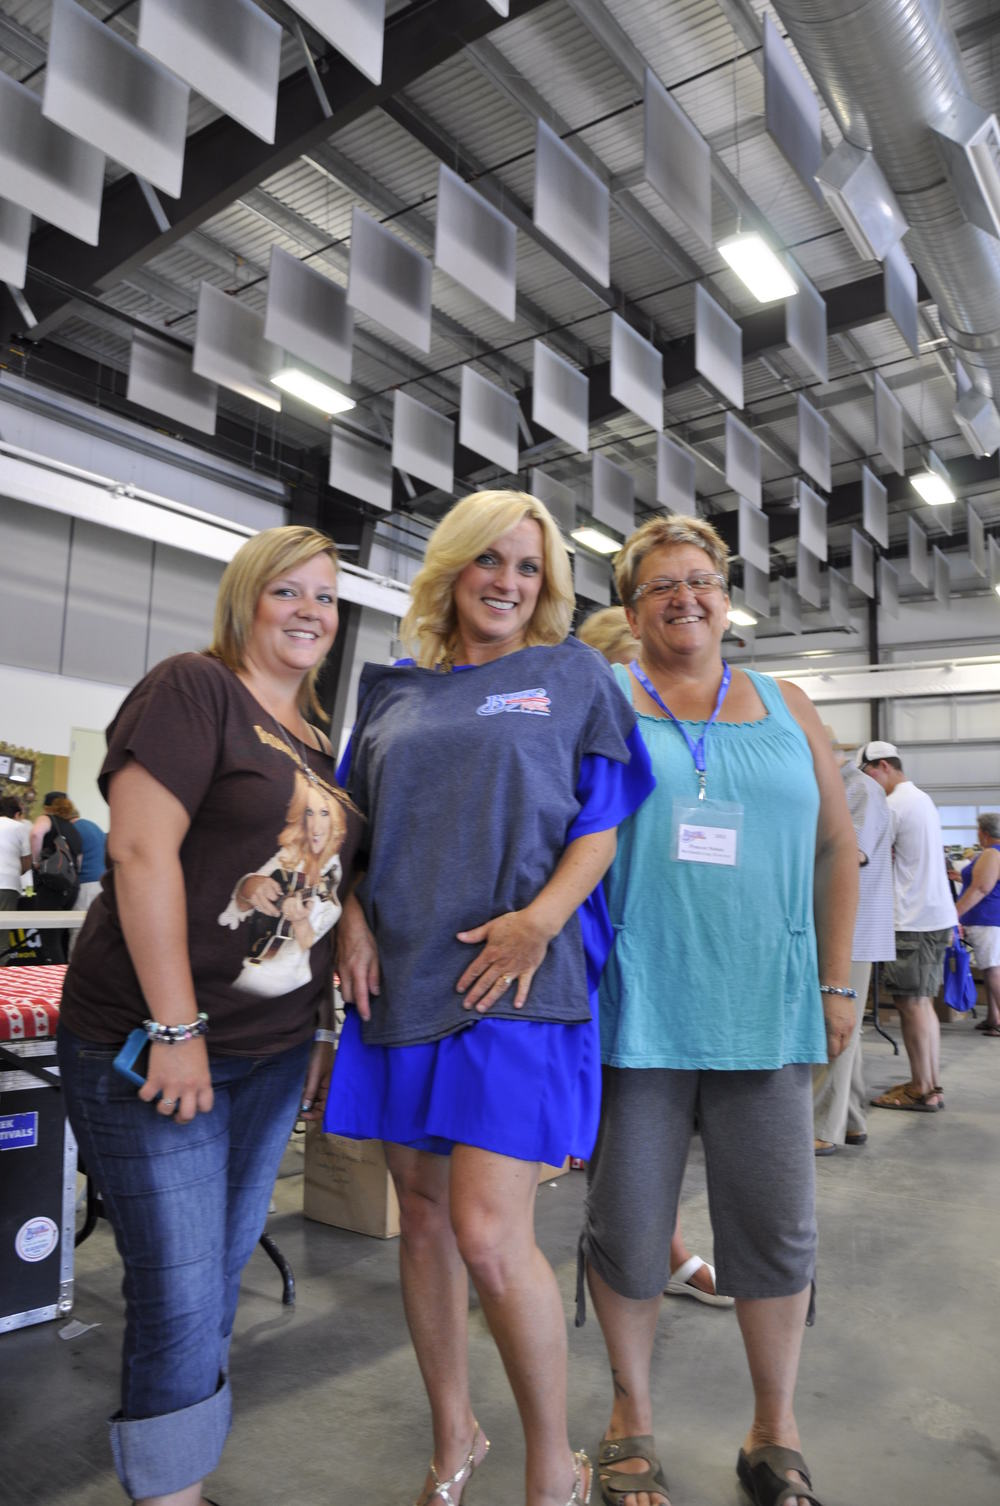 2012 - Rhonda Vincent receiving a Blueberry T-shirt from Blueberry Volunteer Francie Sobon & her daughter